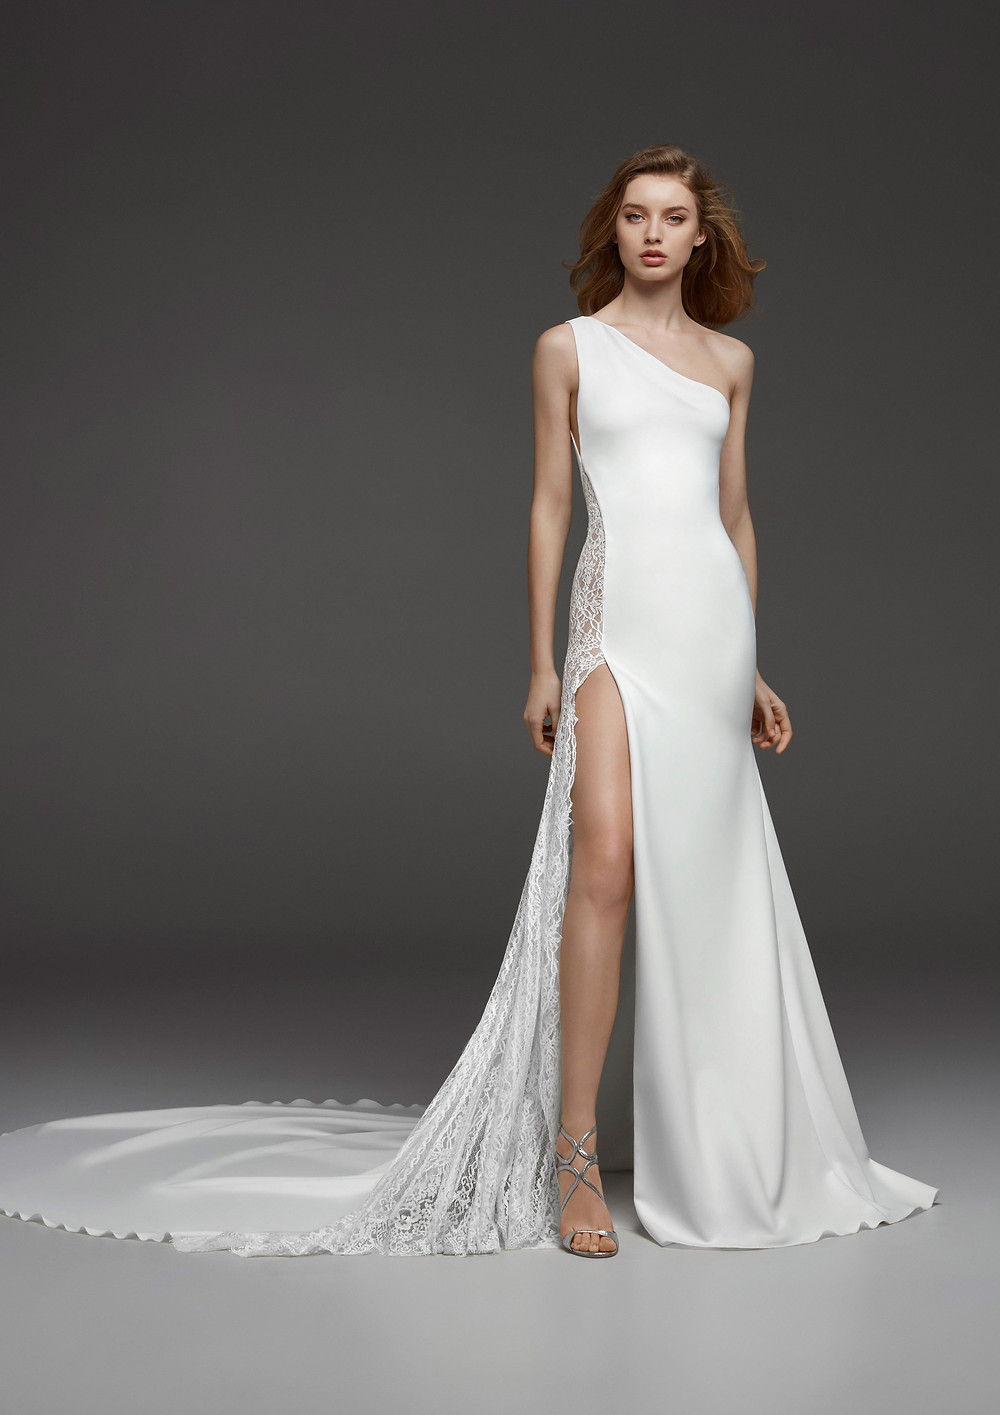 A one shoulder, sheath wedding dress, with lace insert